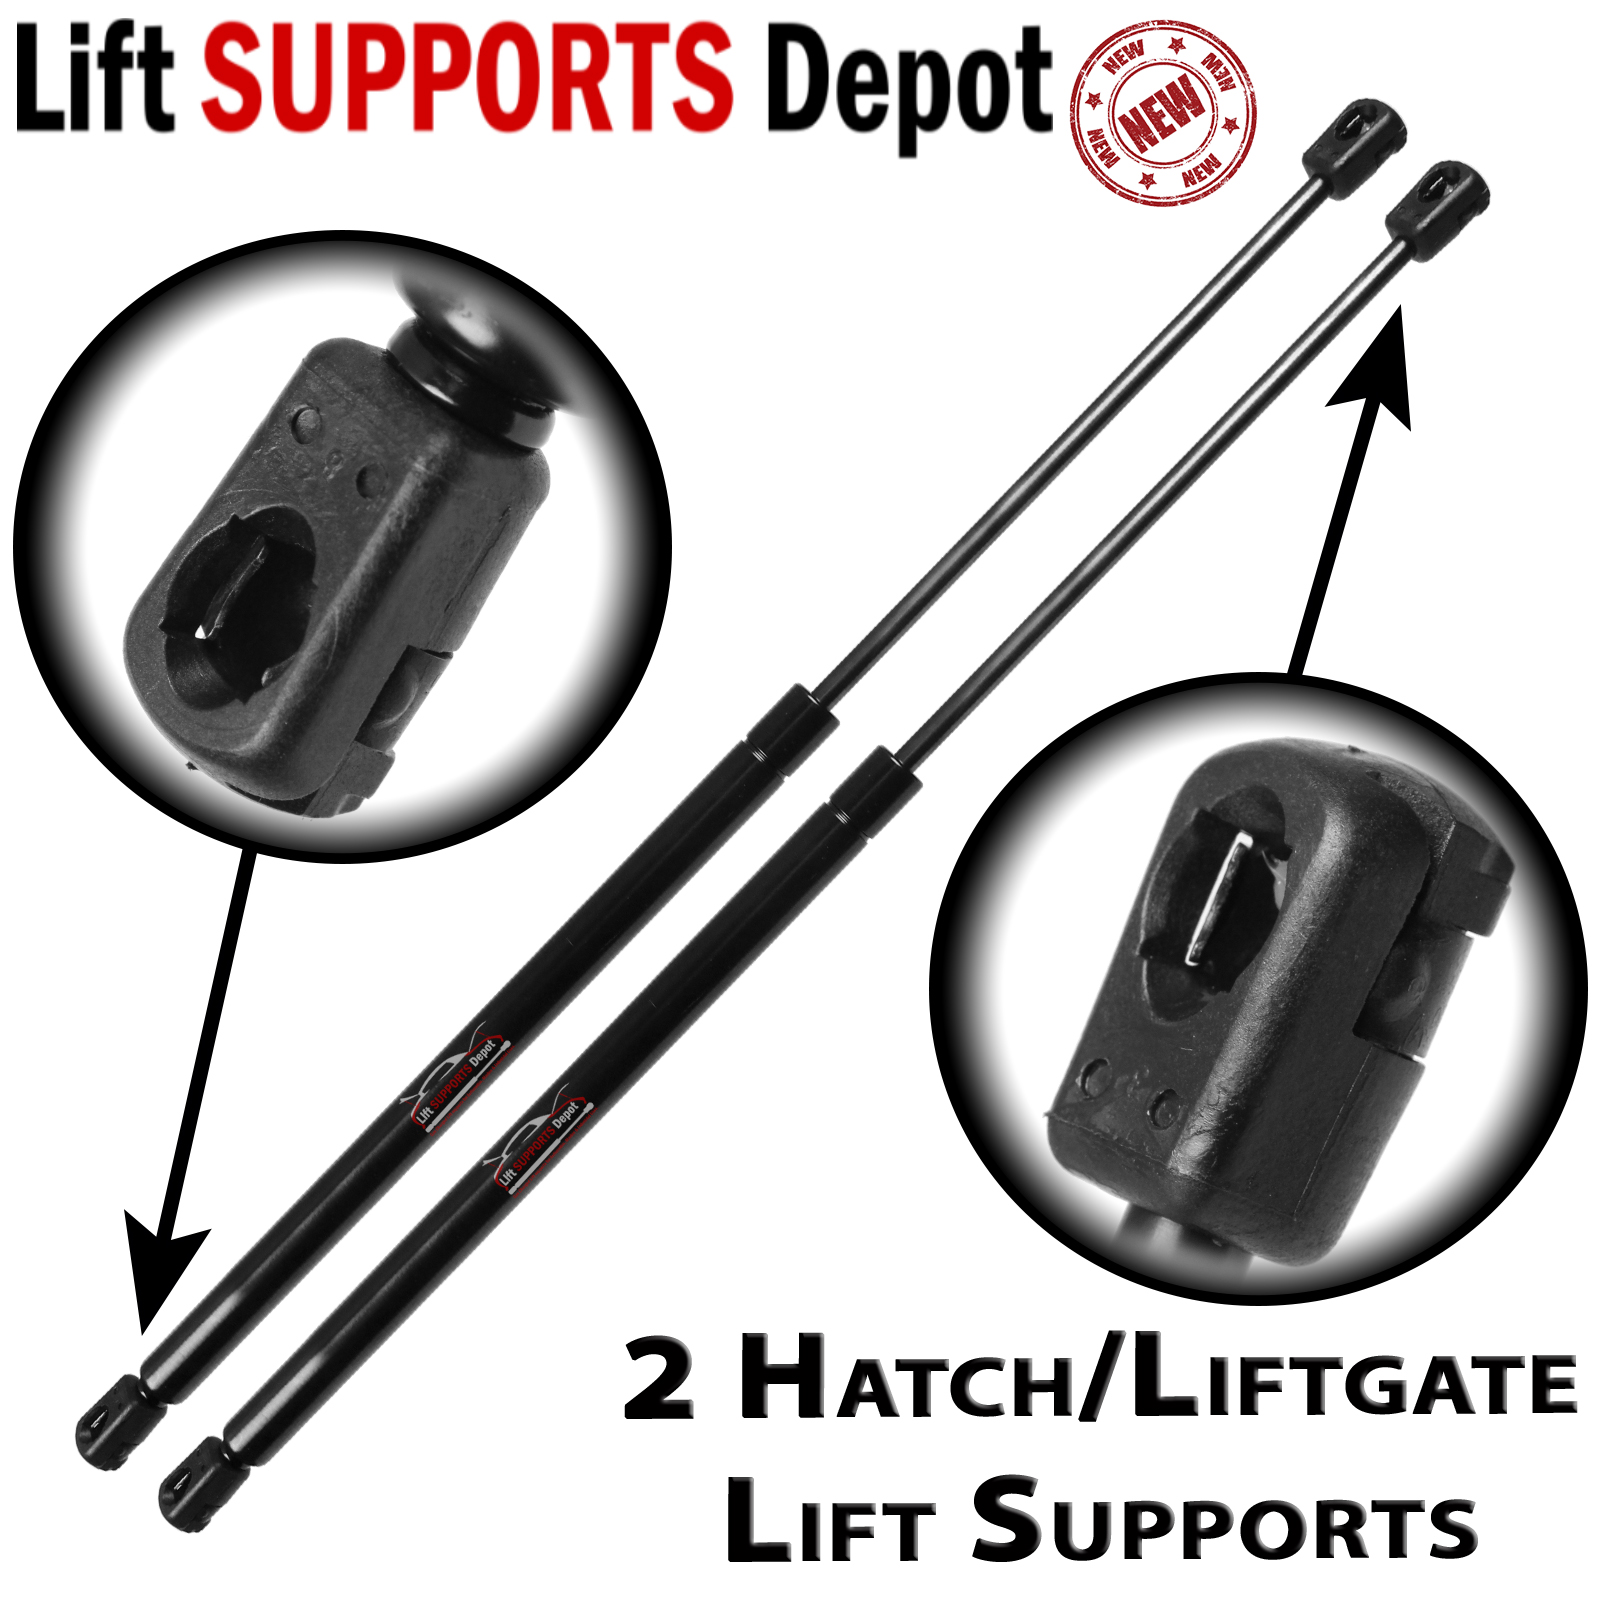 Qty (2) Fits Kia Sorento 2003 To 2009 Rear Liftgate Hatch Lift Supports Struts - PM3028